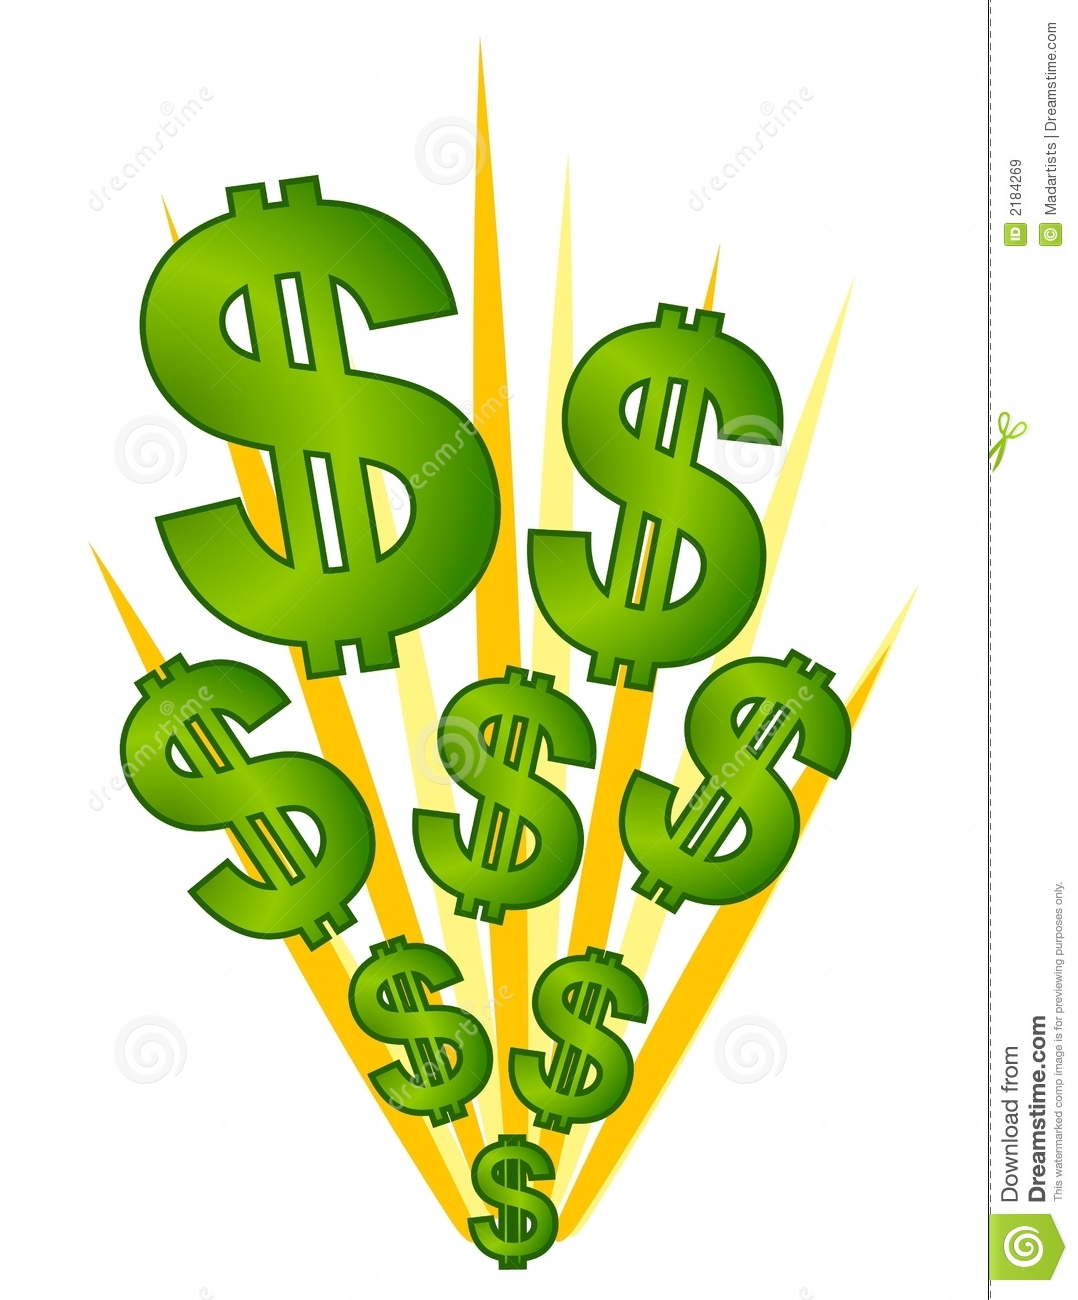 Cash And Money Illustration Of Dollar Signs Exploding Representing